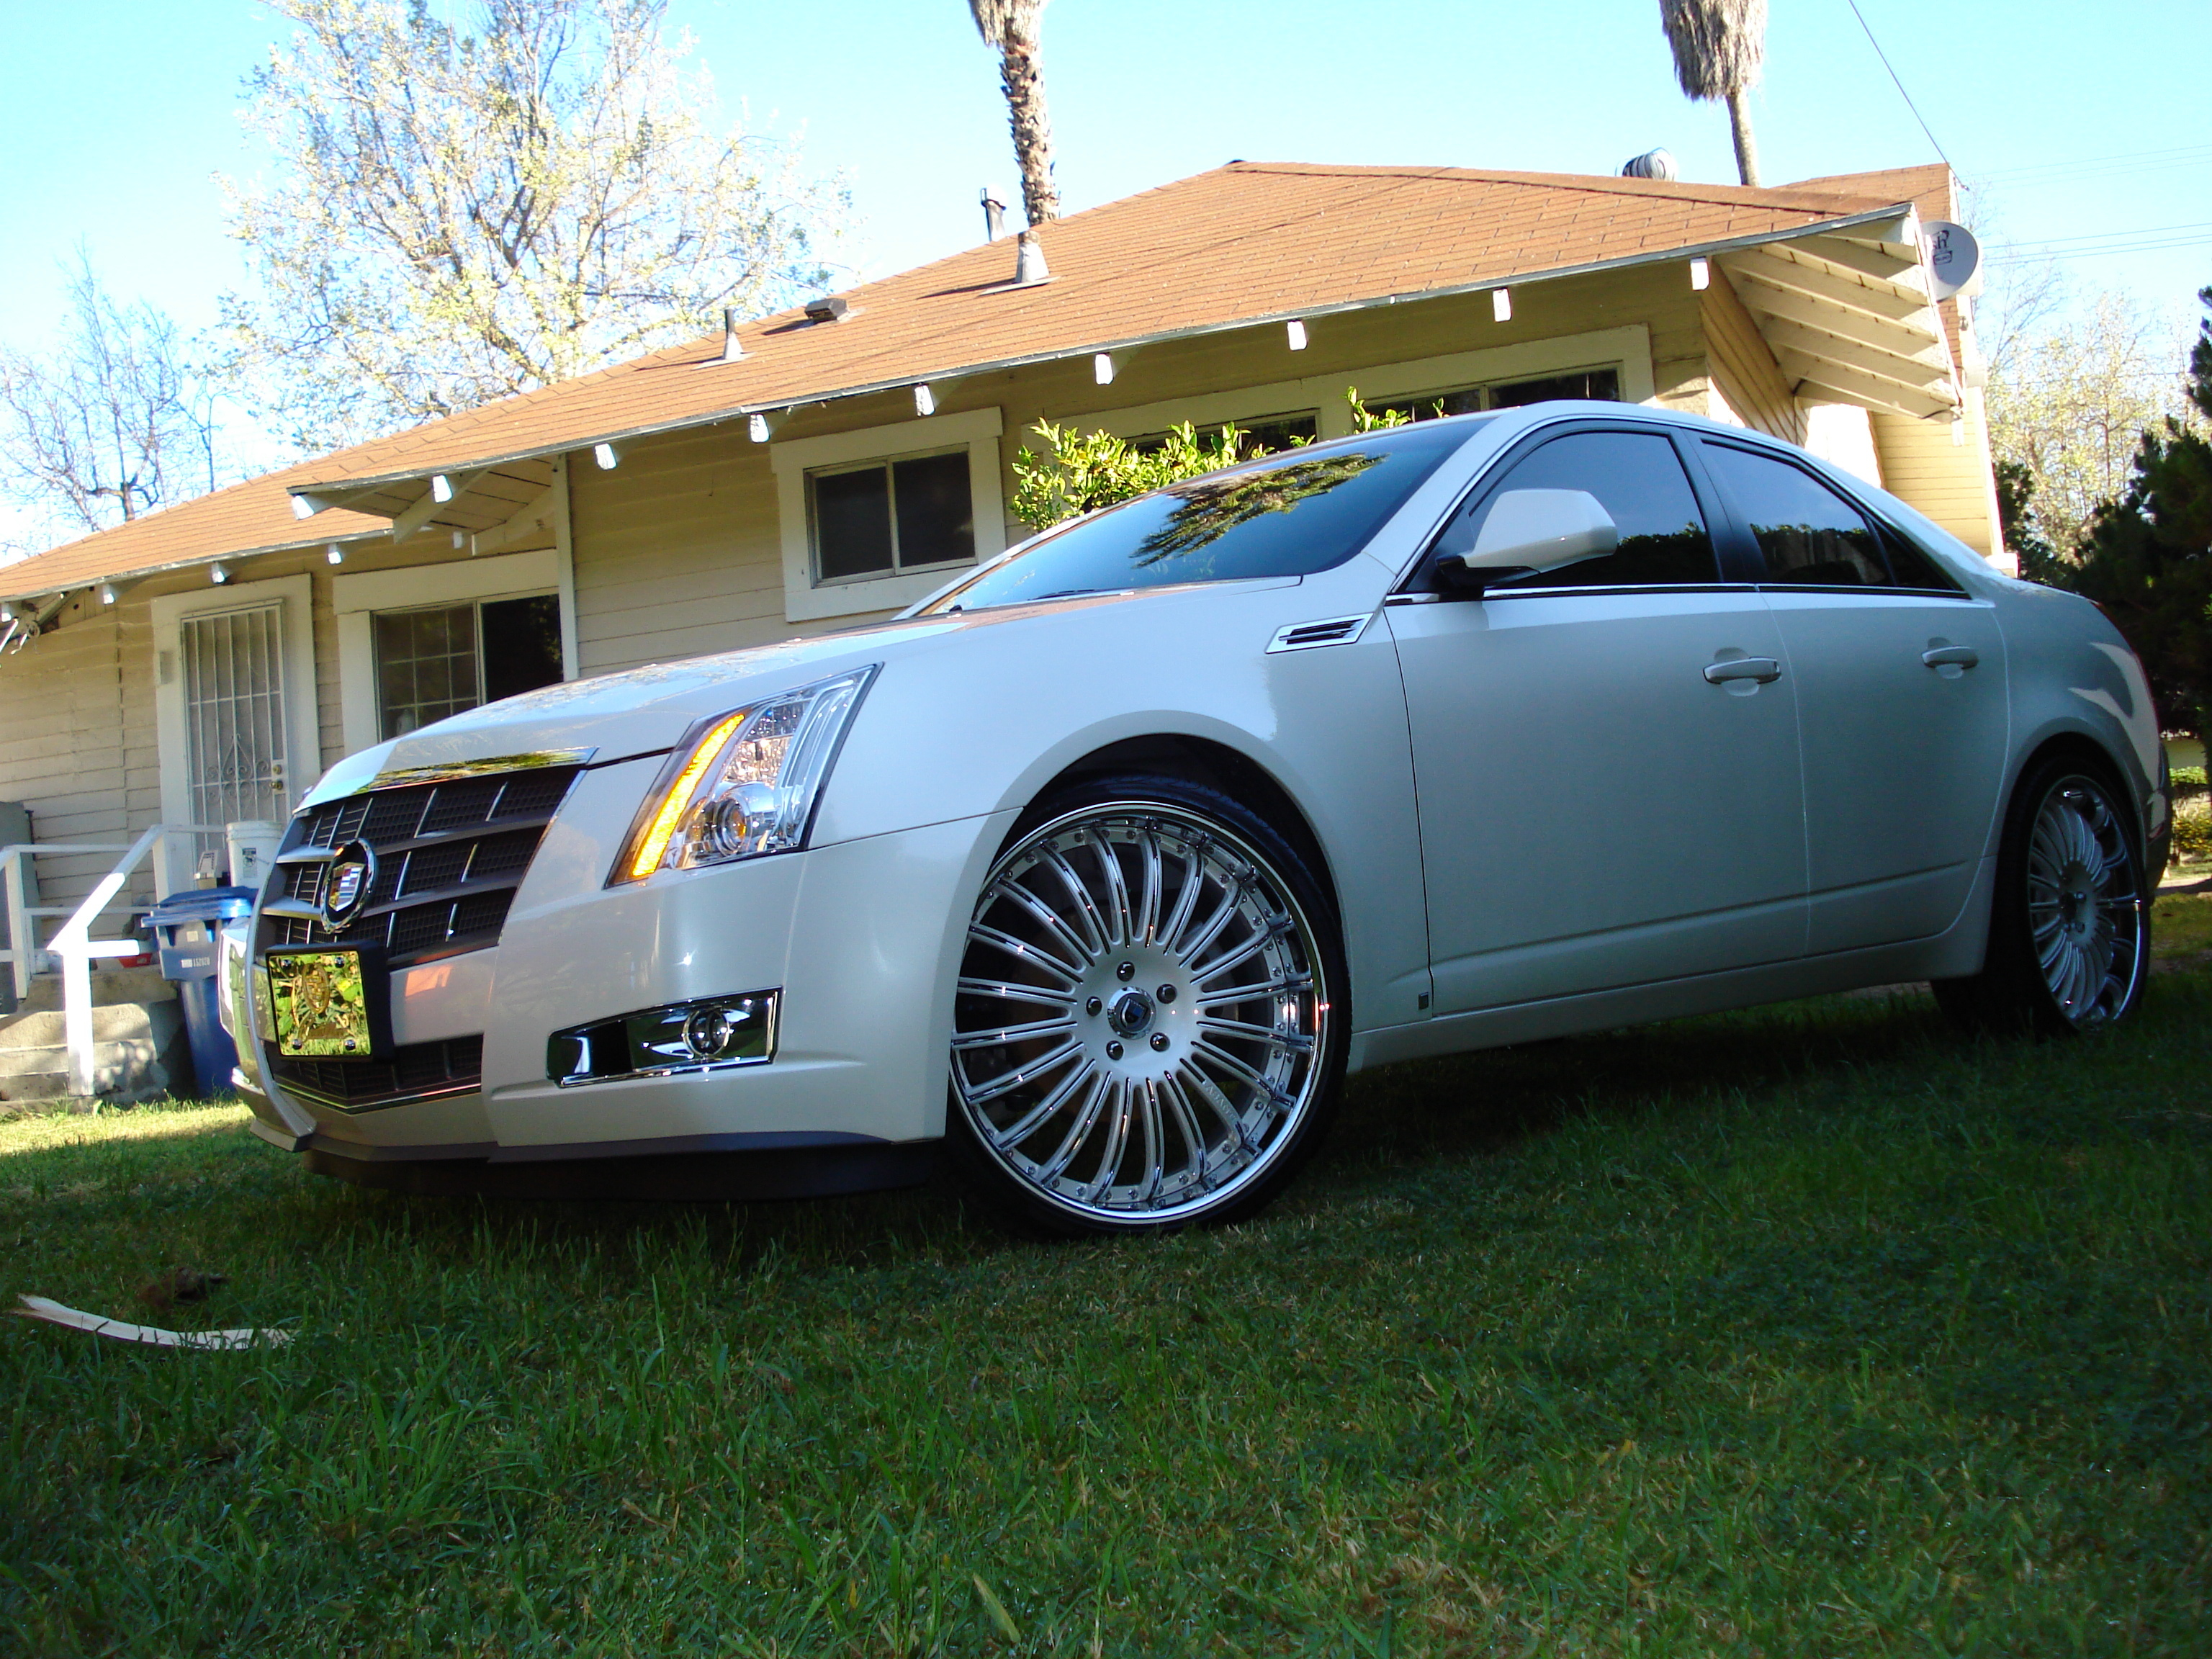 DIAMONDindaROUGH 2008 Cadillac CTS 12928160